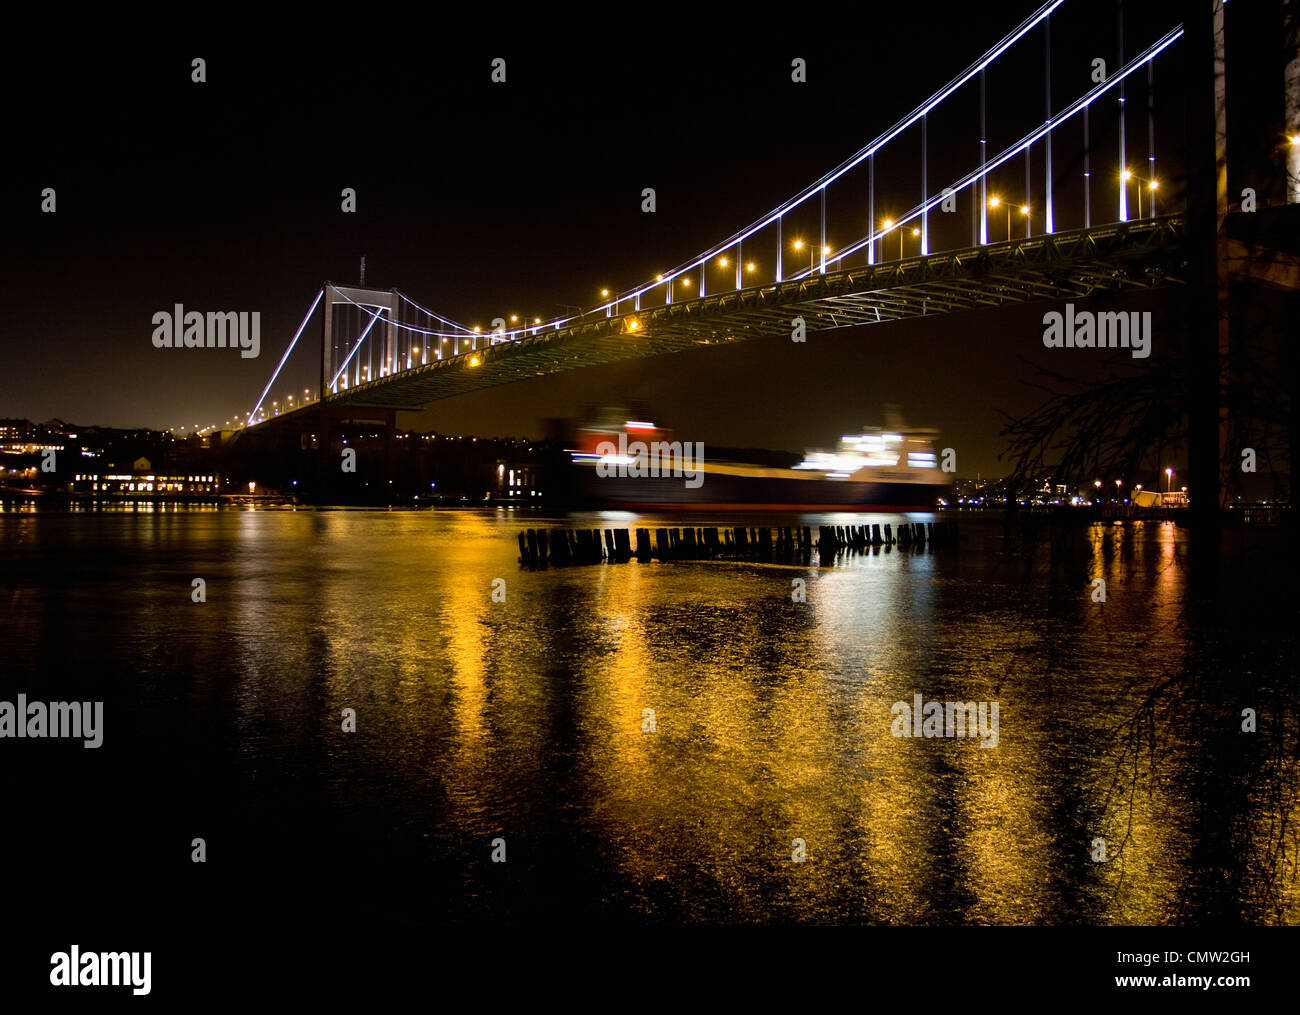 Illuminated bridge in Gothenburg at night - Stock Image